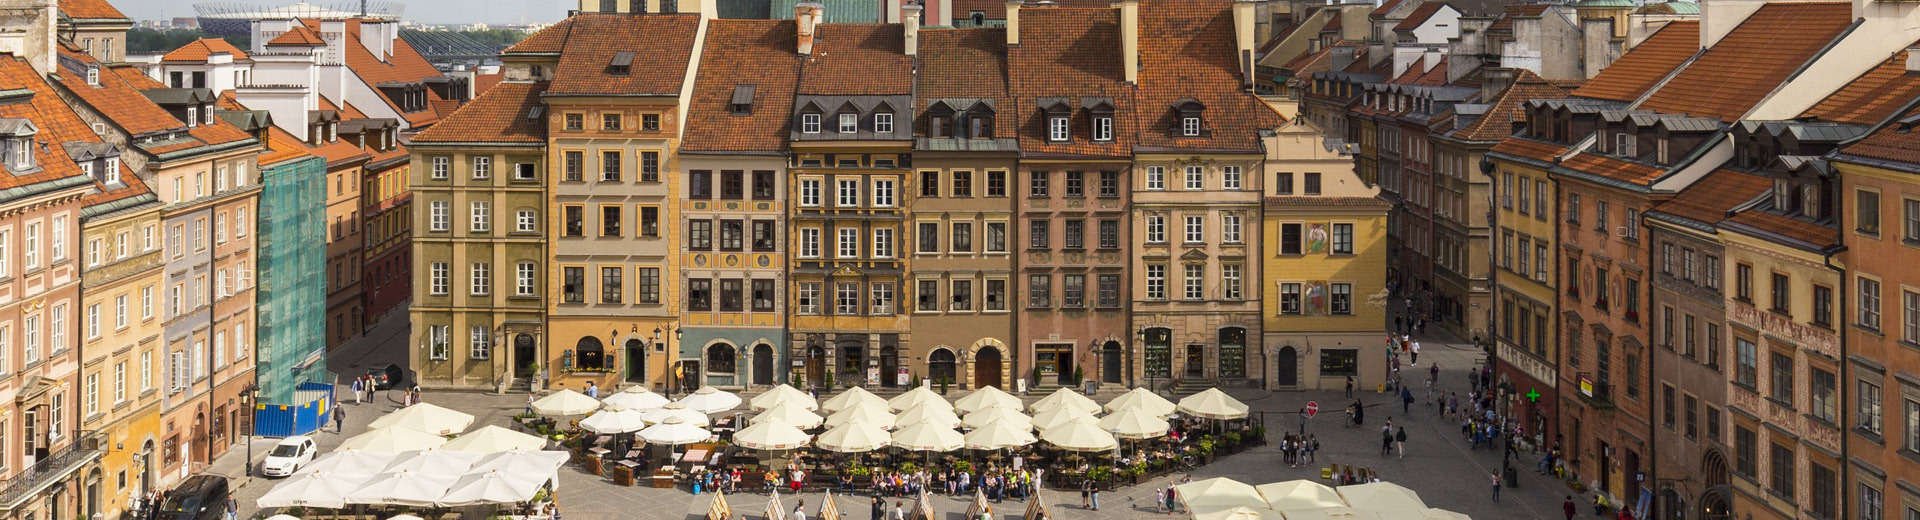 Warsaw's Old Town with tables and chairs outside